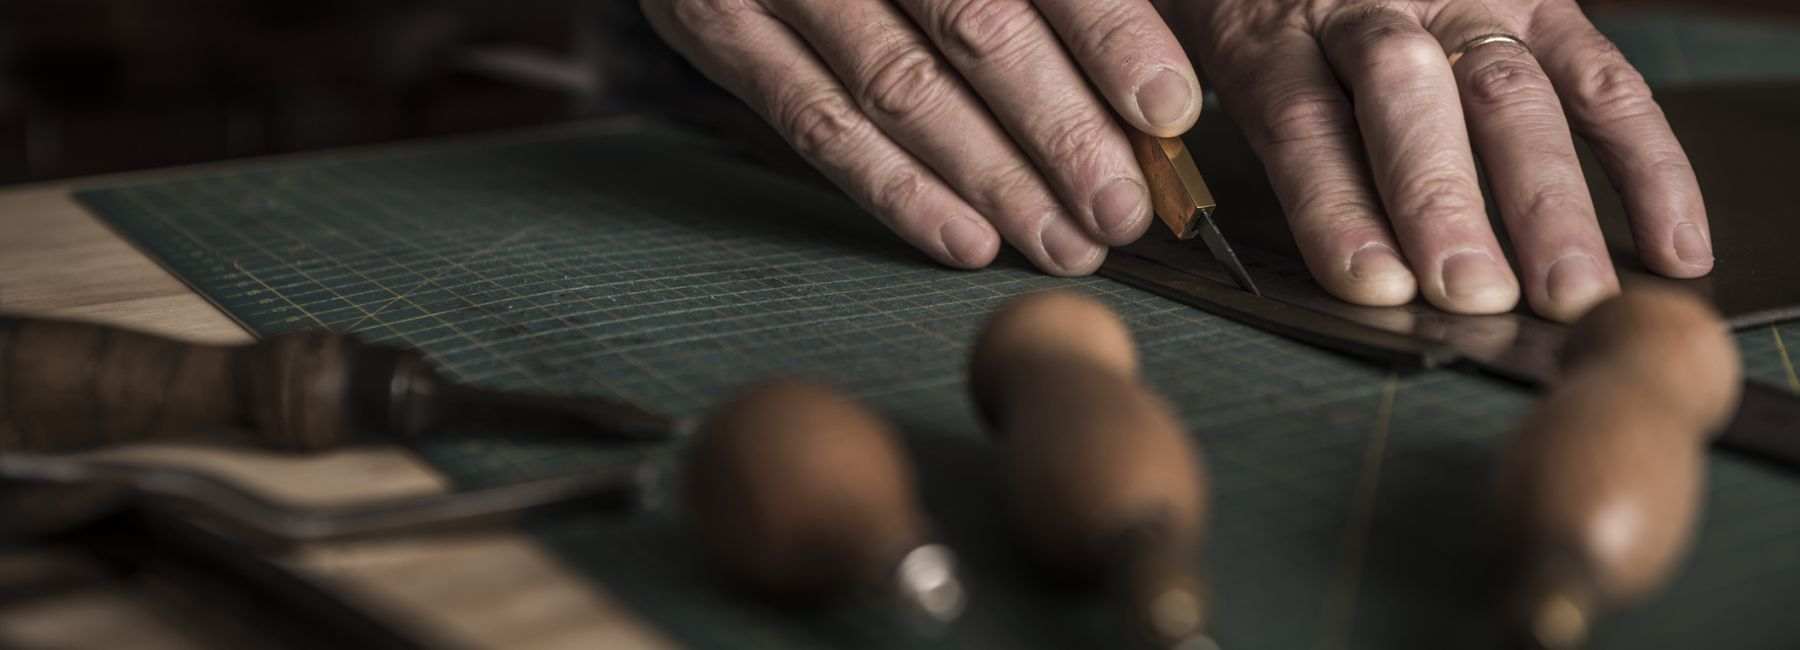 Artisan Working with Leather